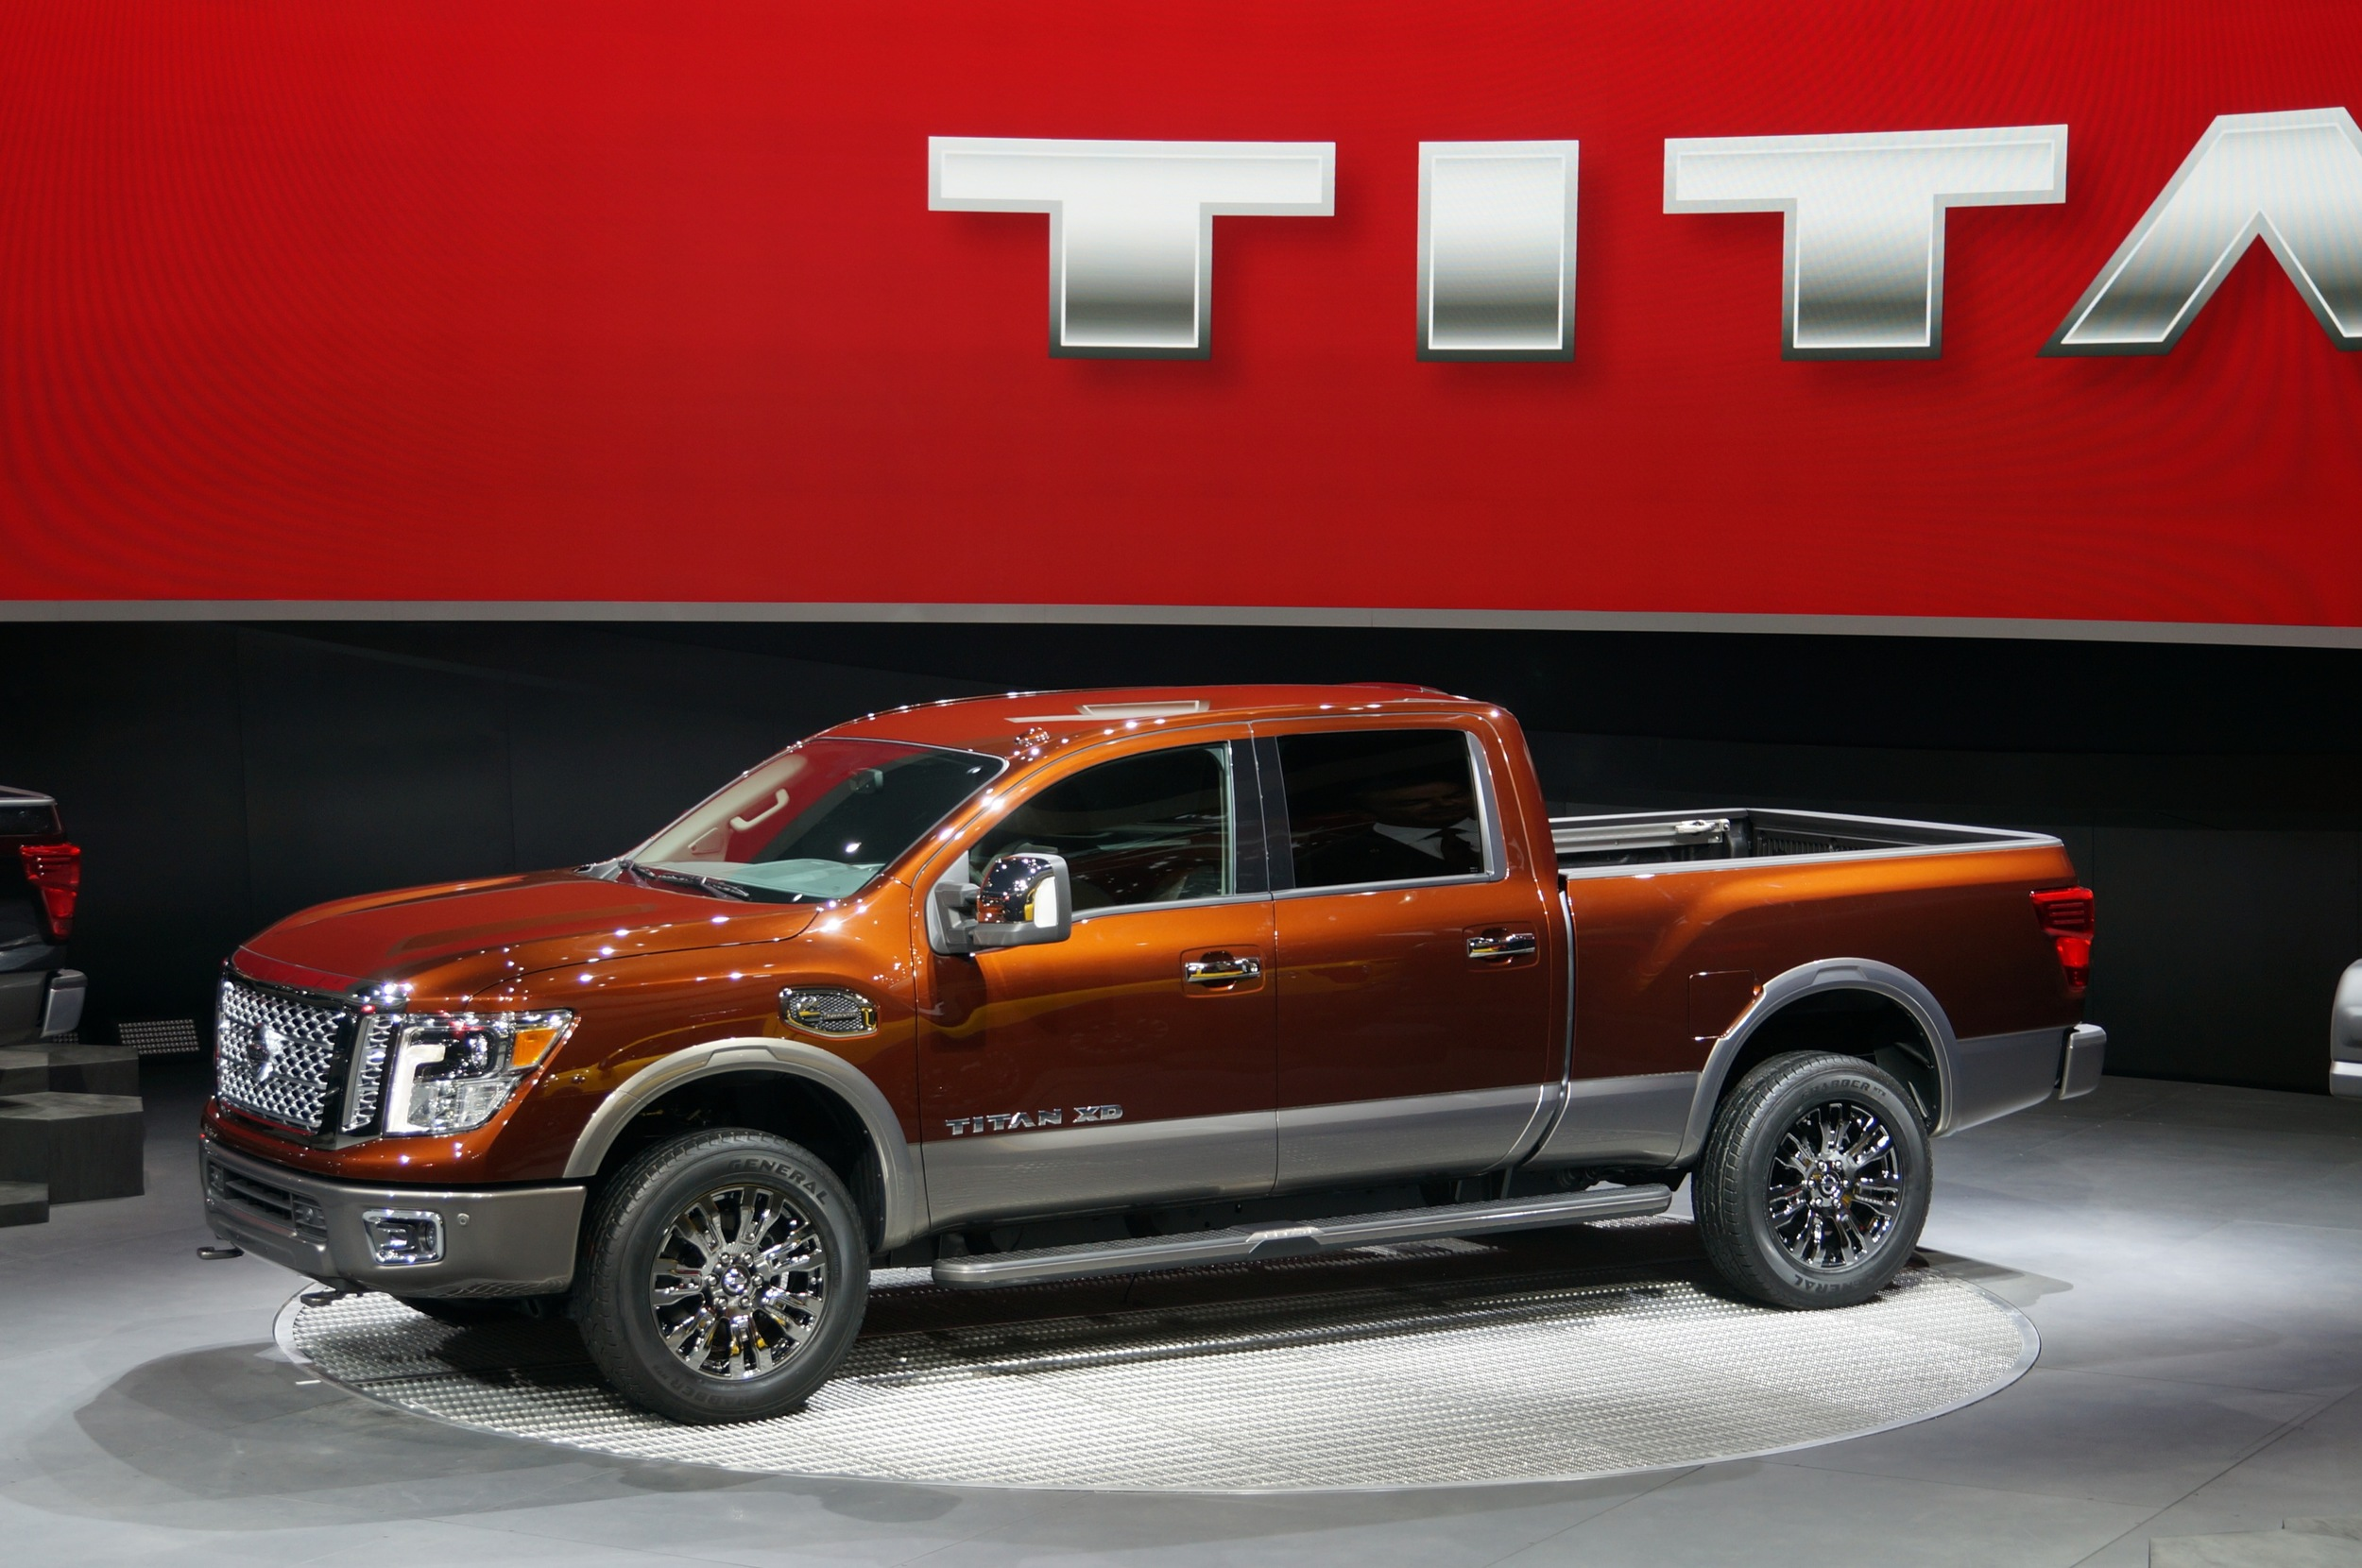 2016 nissan titan xd arrives with diesel v8 power. Black Bedroom Furniture Sets. Home Design Ideas